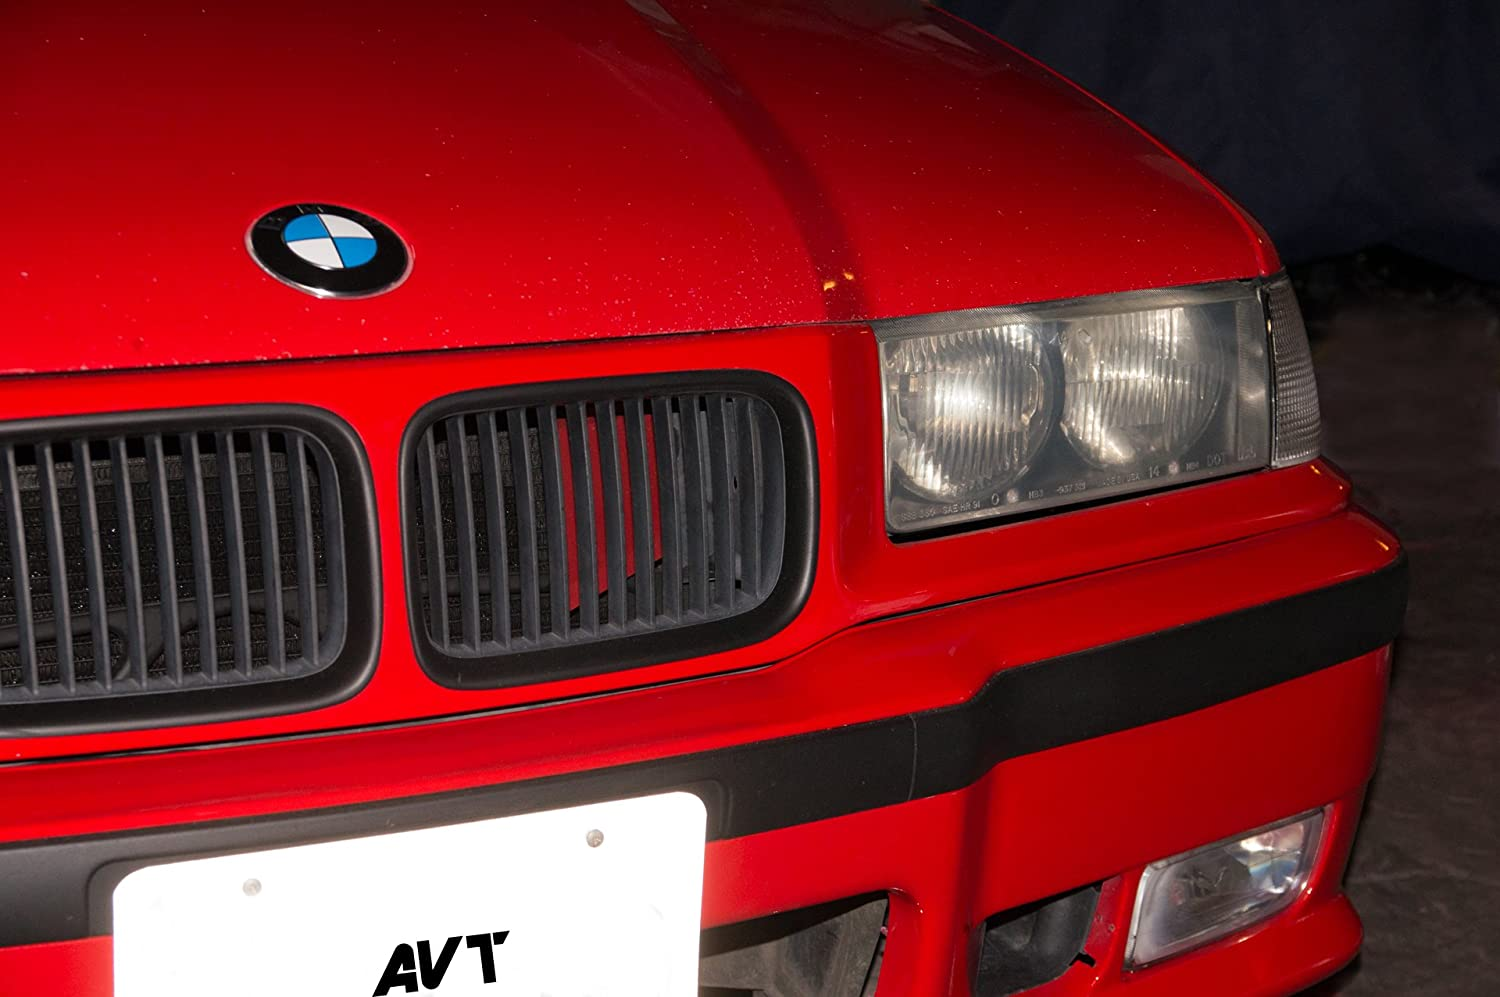 AVT Air Intake Scoop e36 BMW  1991-1999  Red 318i, 318Ti, 318is, 325i